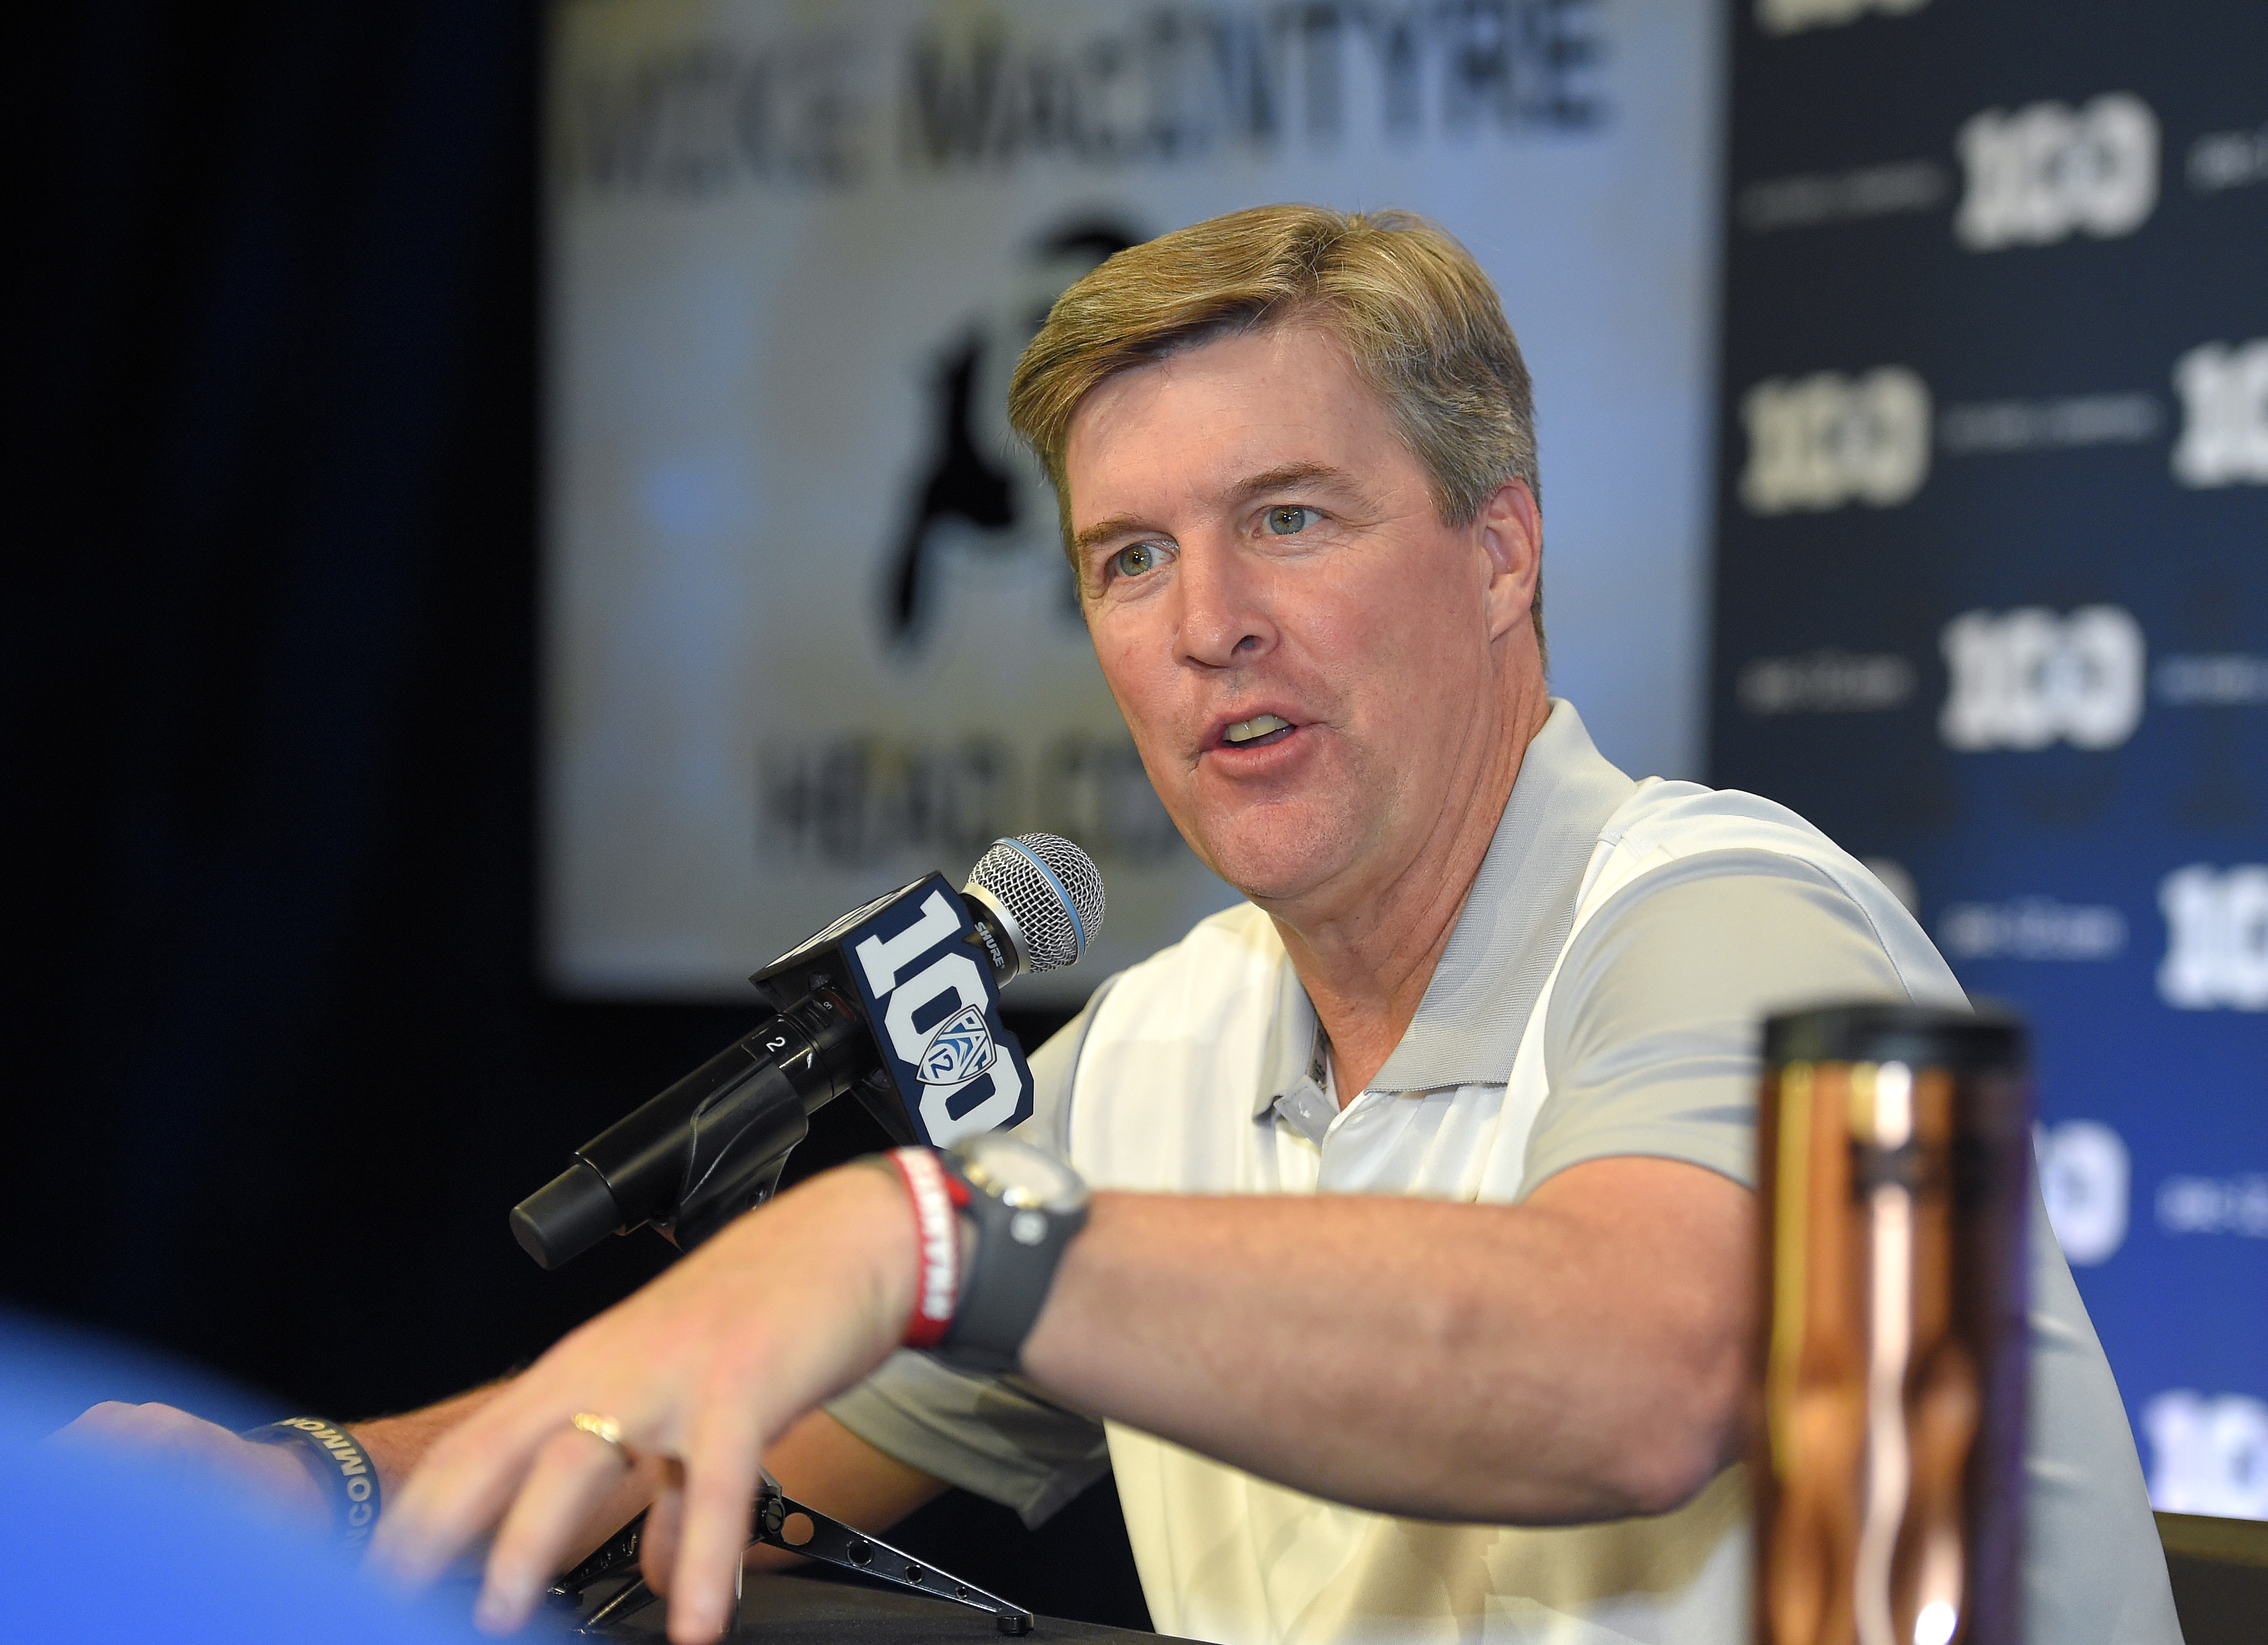 FILE - In this July 30, 2015, file photo, Colorado head coach Mike MacIntyre speaks to reporters during NCAA college Pac-12 Football Media Days in Burbank, Calif. Ever so gradually, the Colorado Buffaloes are becoming a first-rate program _ in terms of fa